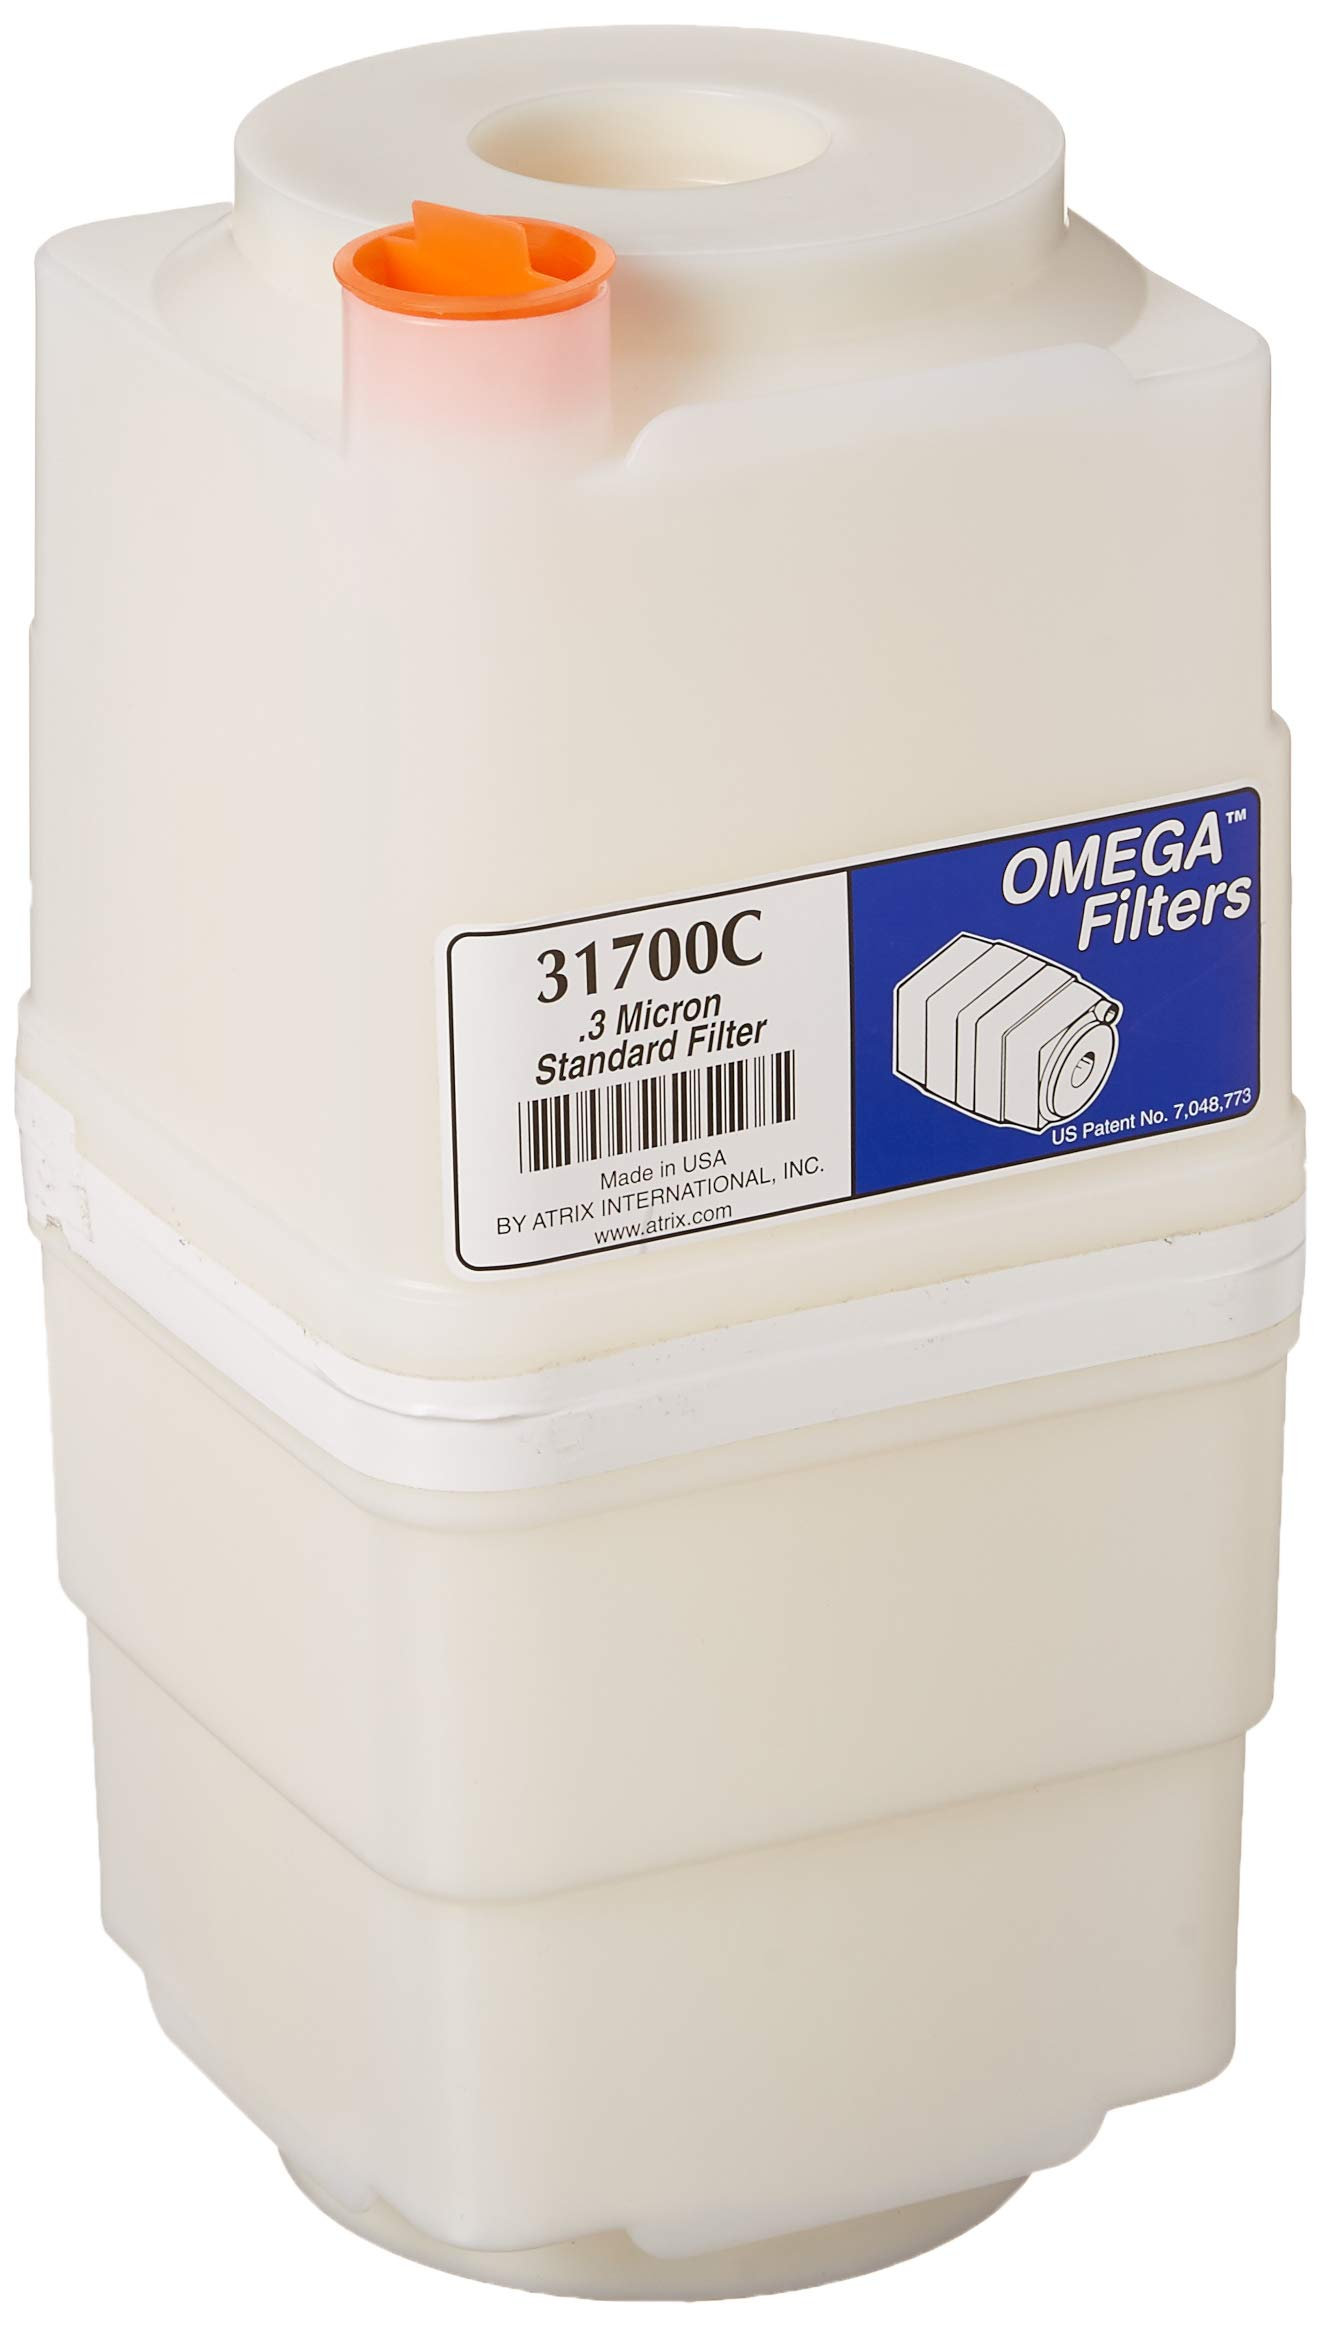 Atrix - 31700 Toner and Dust Filter Cartridge for Omega Series, 1-Gallon by Atrix